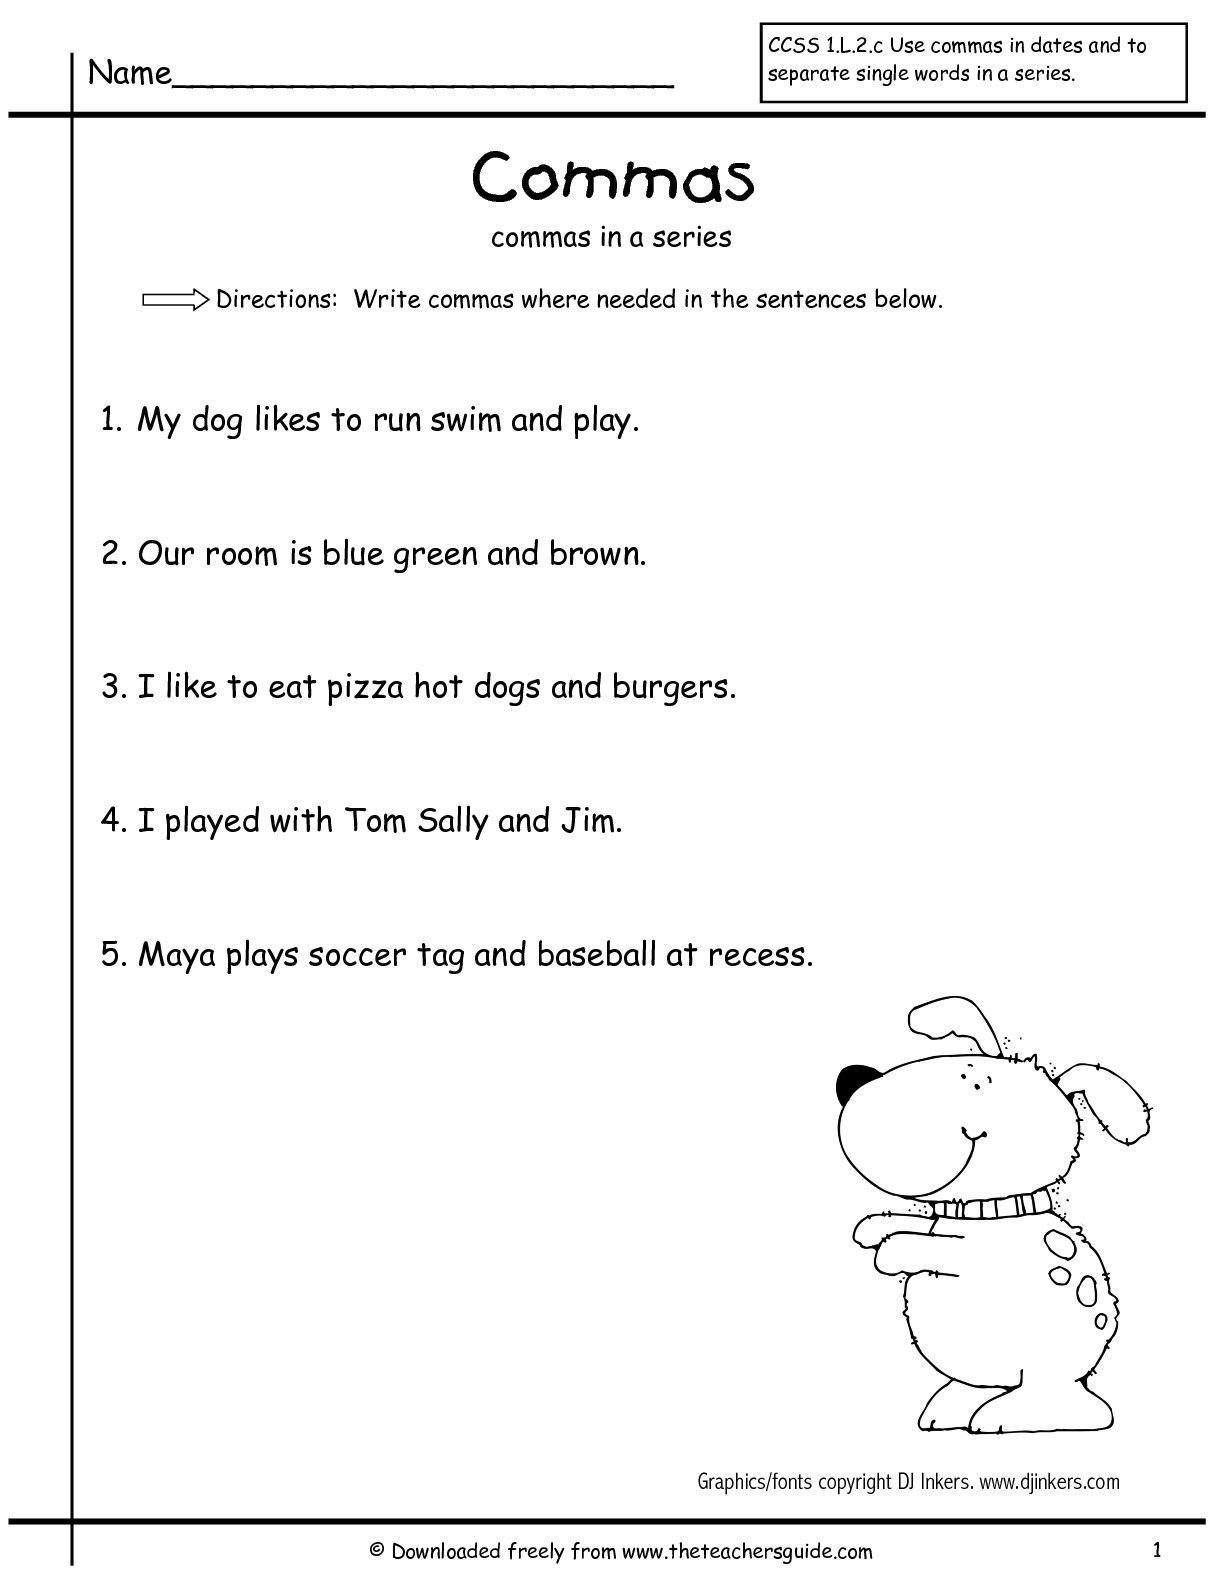 Comma Worksheets Middle School Masinseriesfirstgrade2 001 001 1224—1584